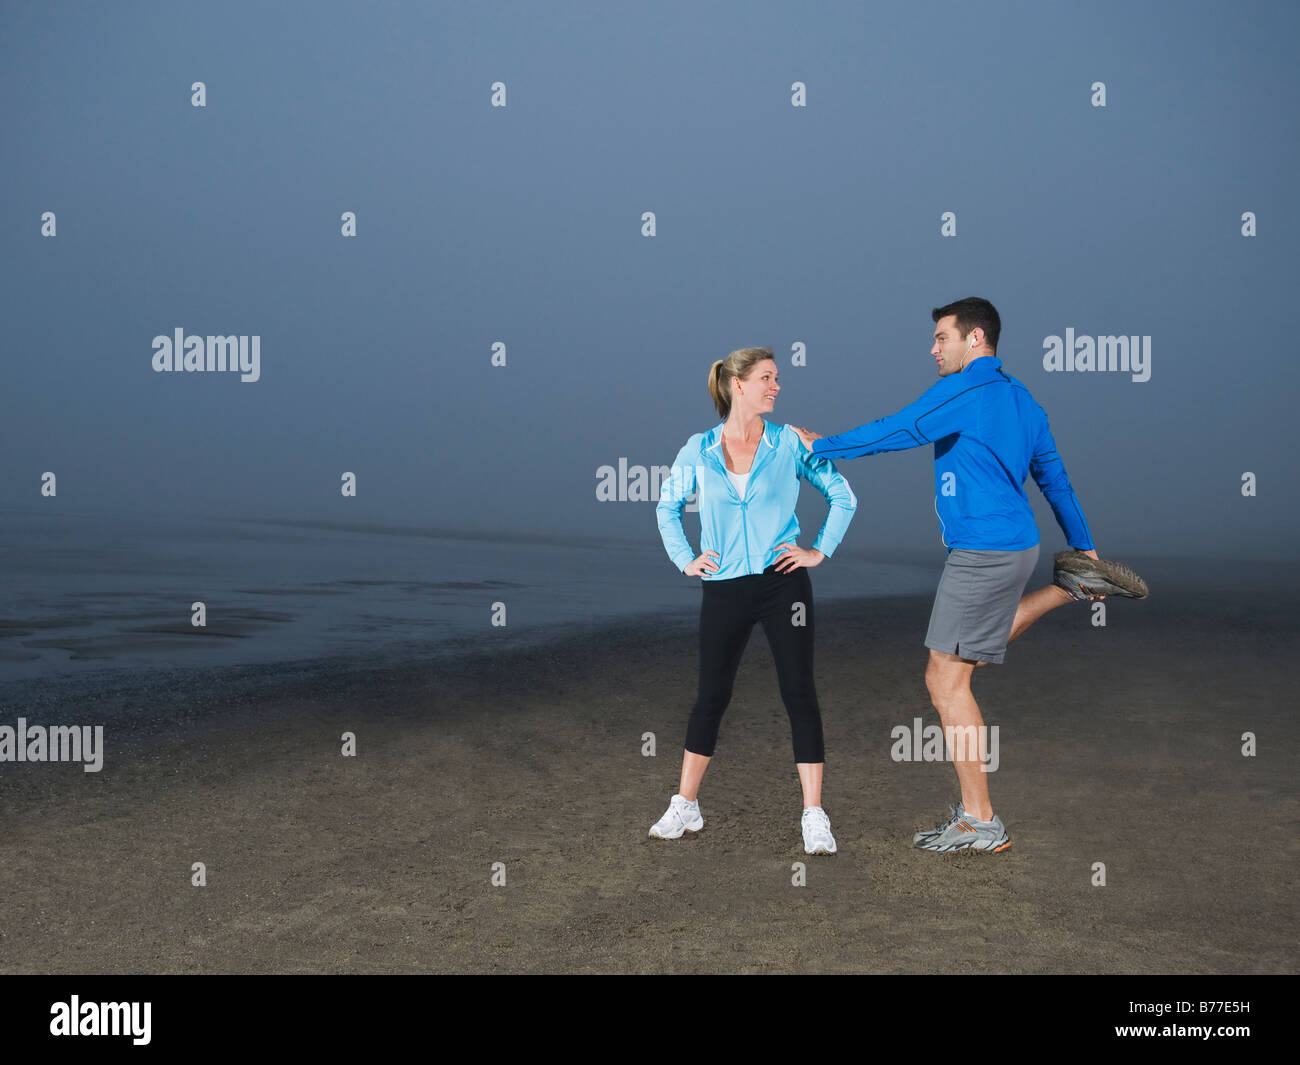 Couple stretching on beach - Stock Image